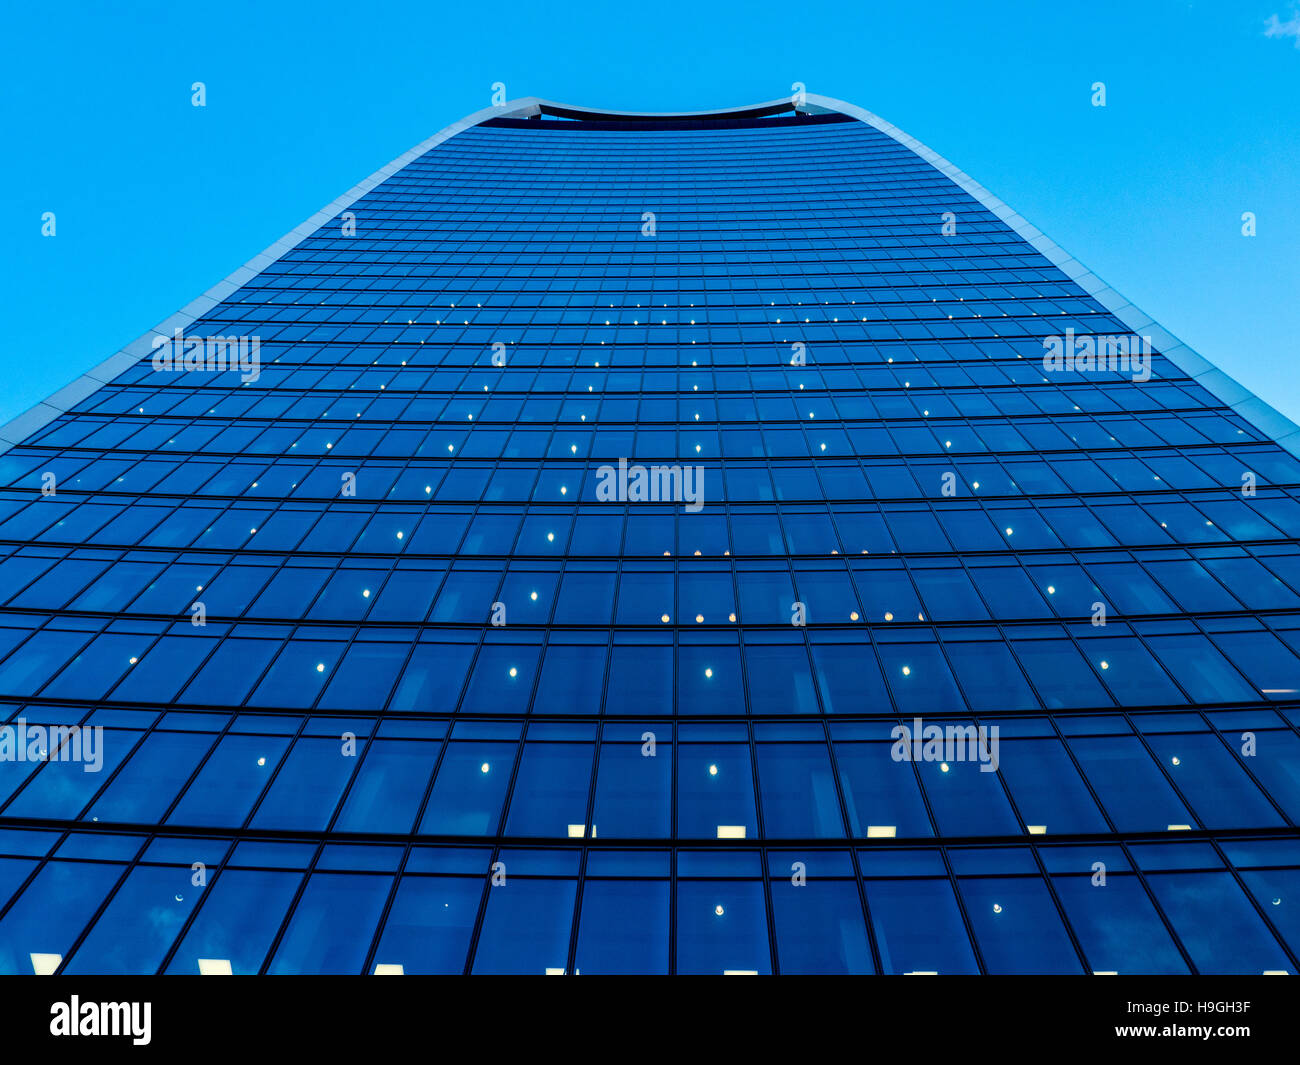 Exterior of 20 Fenchurch Street, known as the Walkie Talkie building, London, UK. - Stock Image